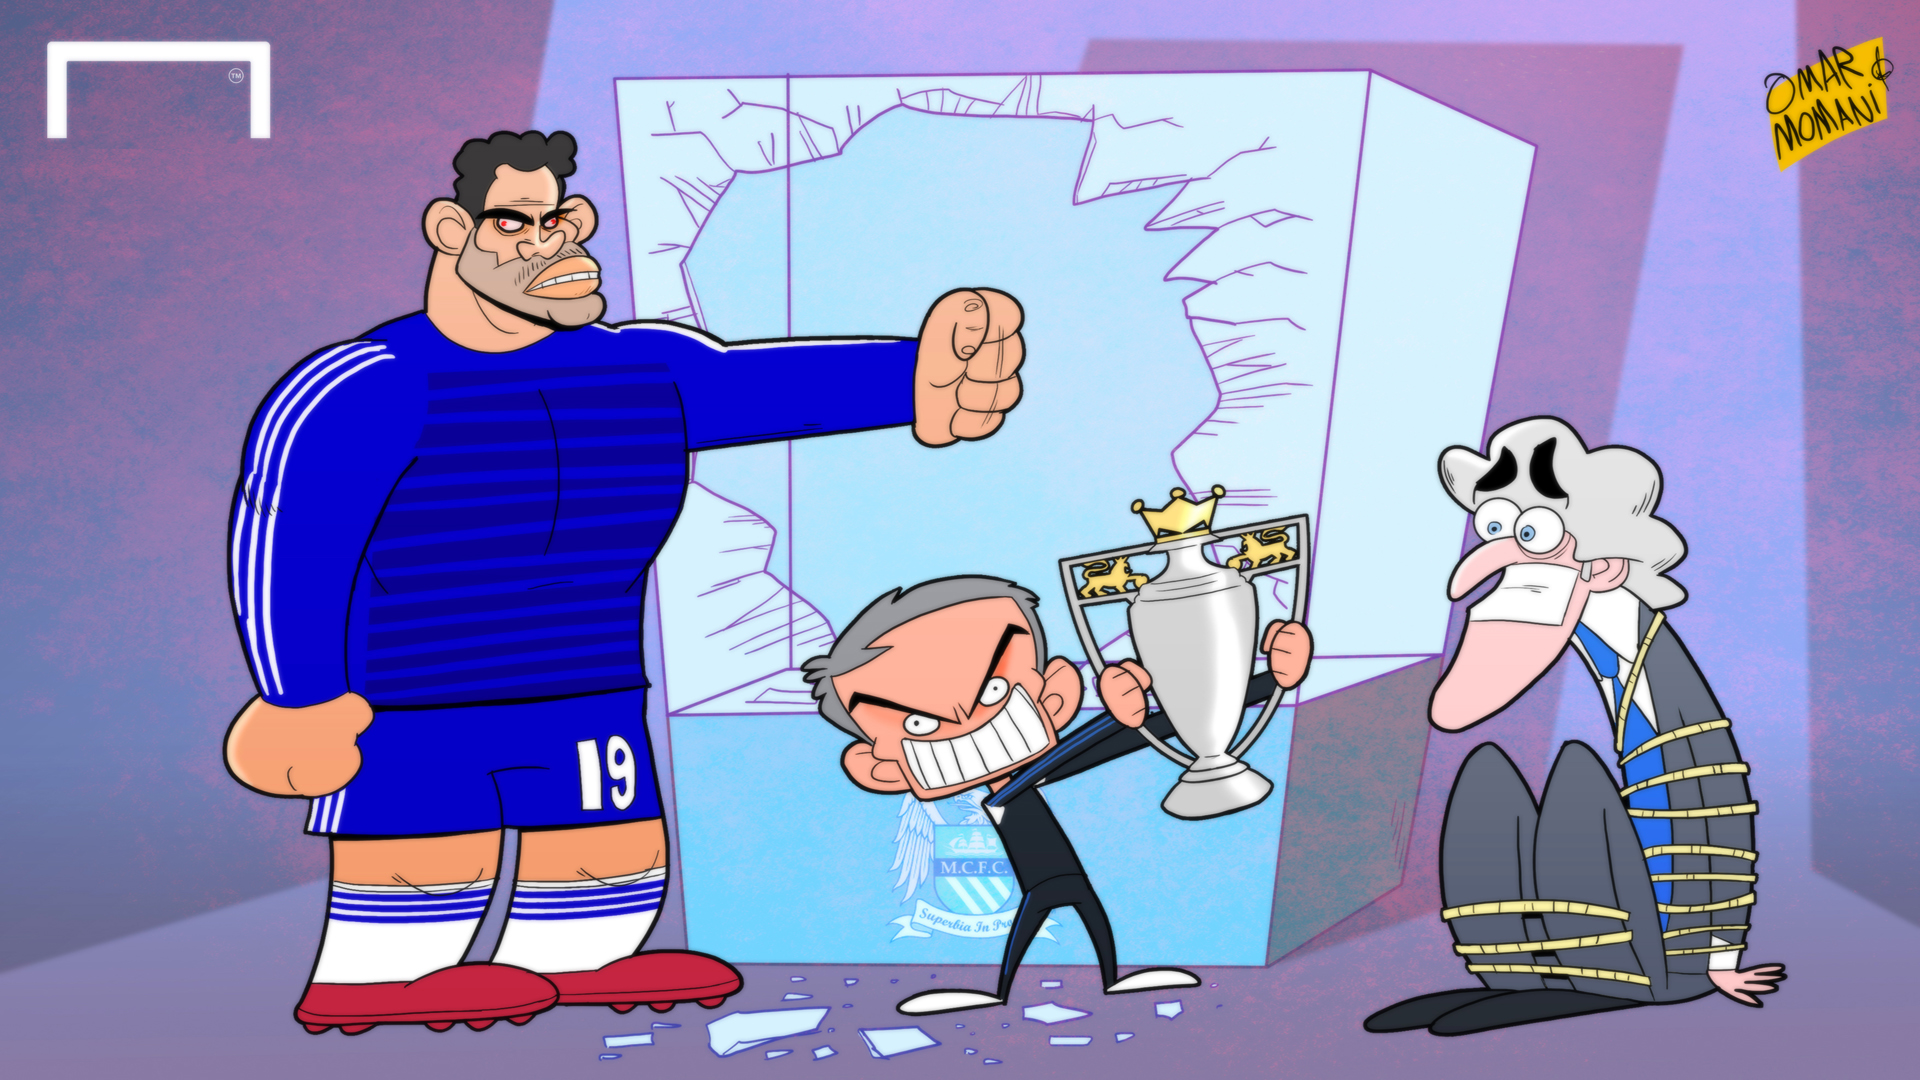 Premier League Cartoons Steal The Premier League